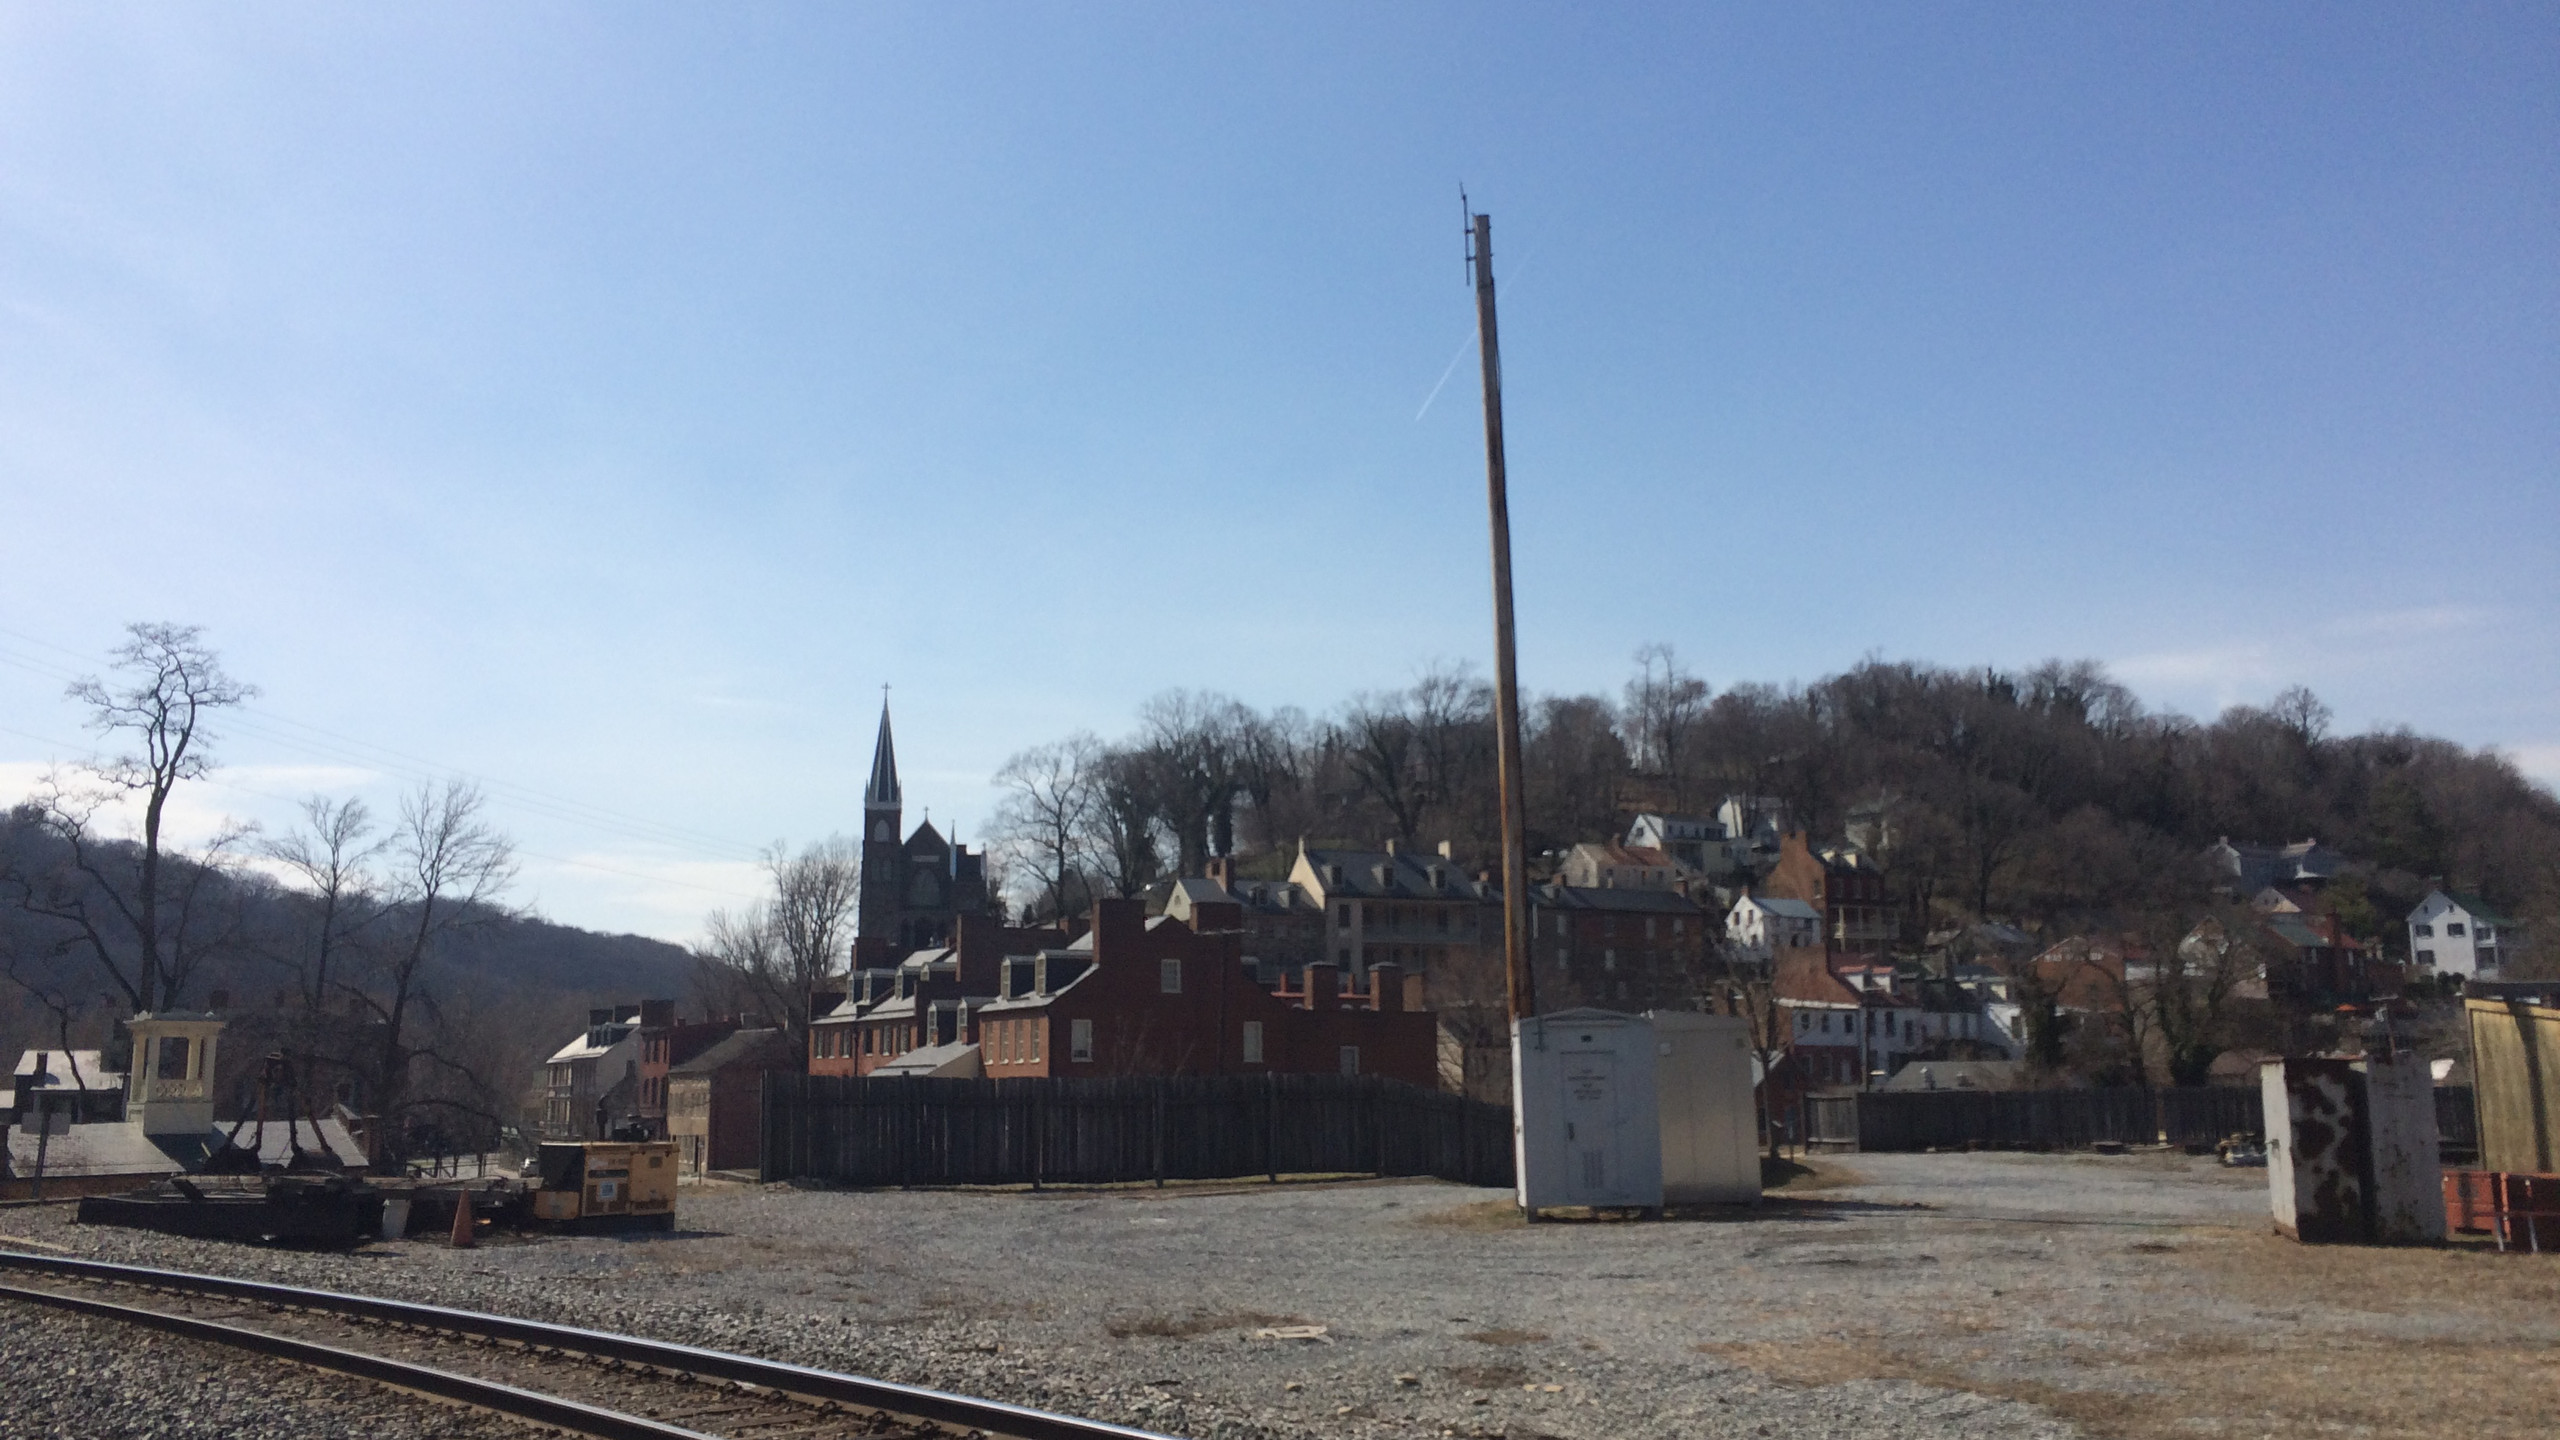 Harpers Ferry from the RR Tracks